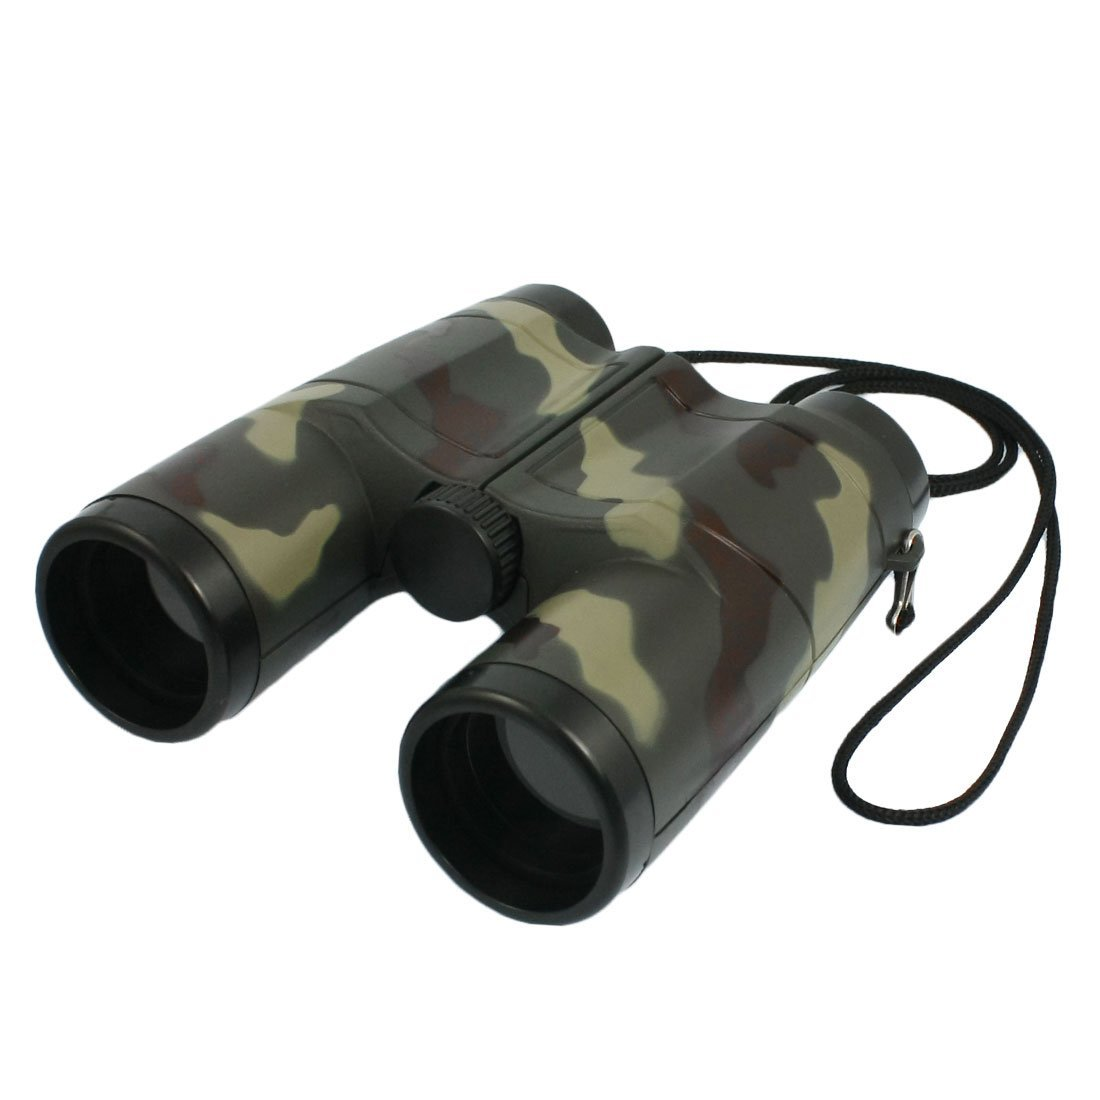 New SODIAL(R) 4X 31mm Lens Camouflage Pattern Binocular Telescope For Child + Neck Strap